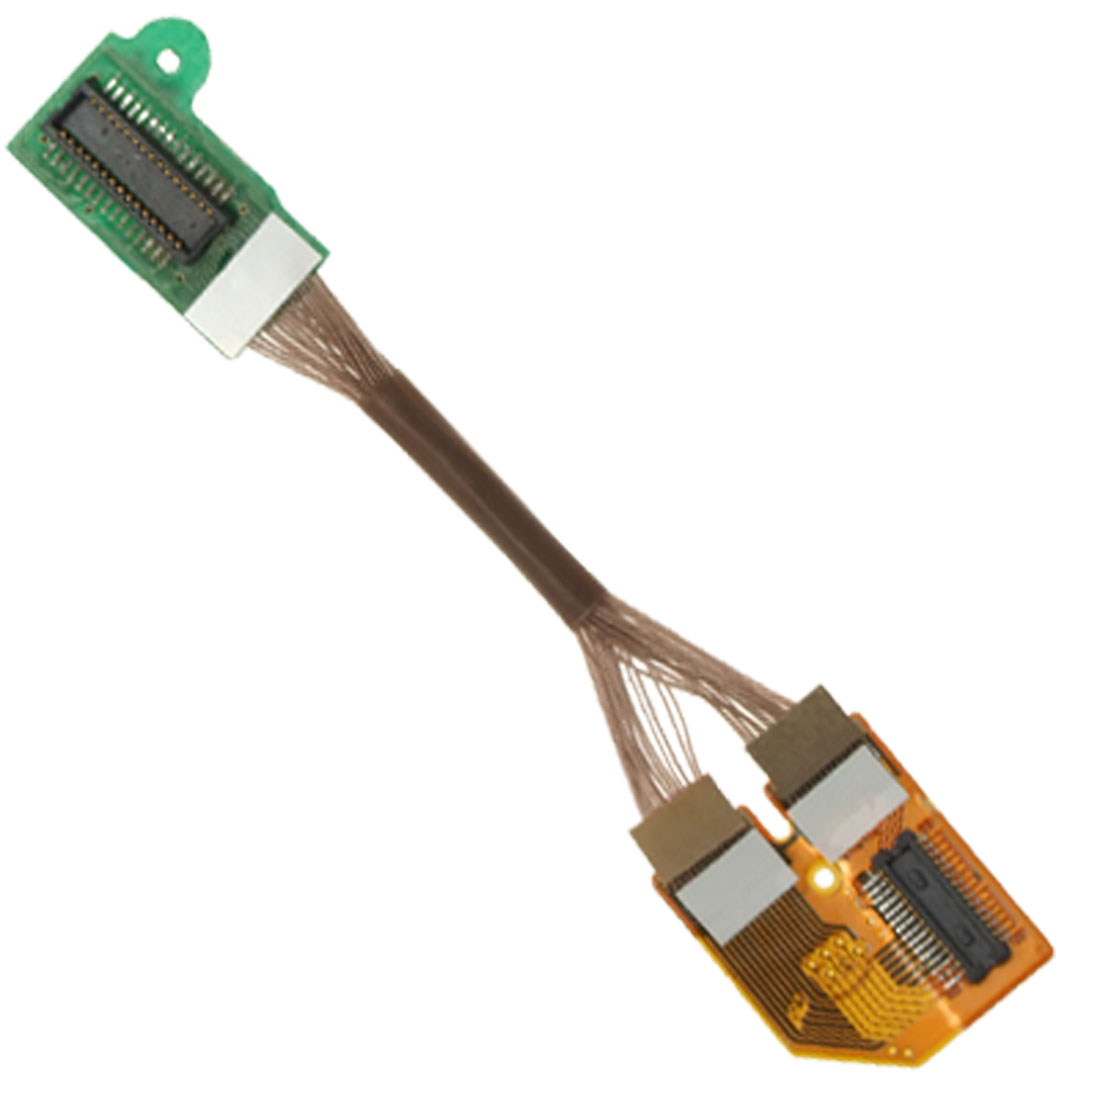 Replacement LCD Flex Ribbon Cable for Nokia 6101